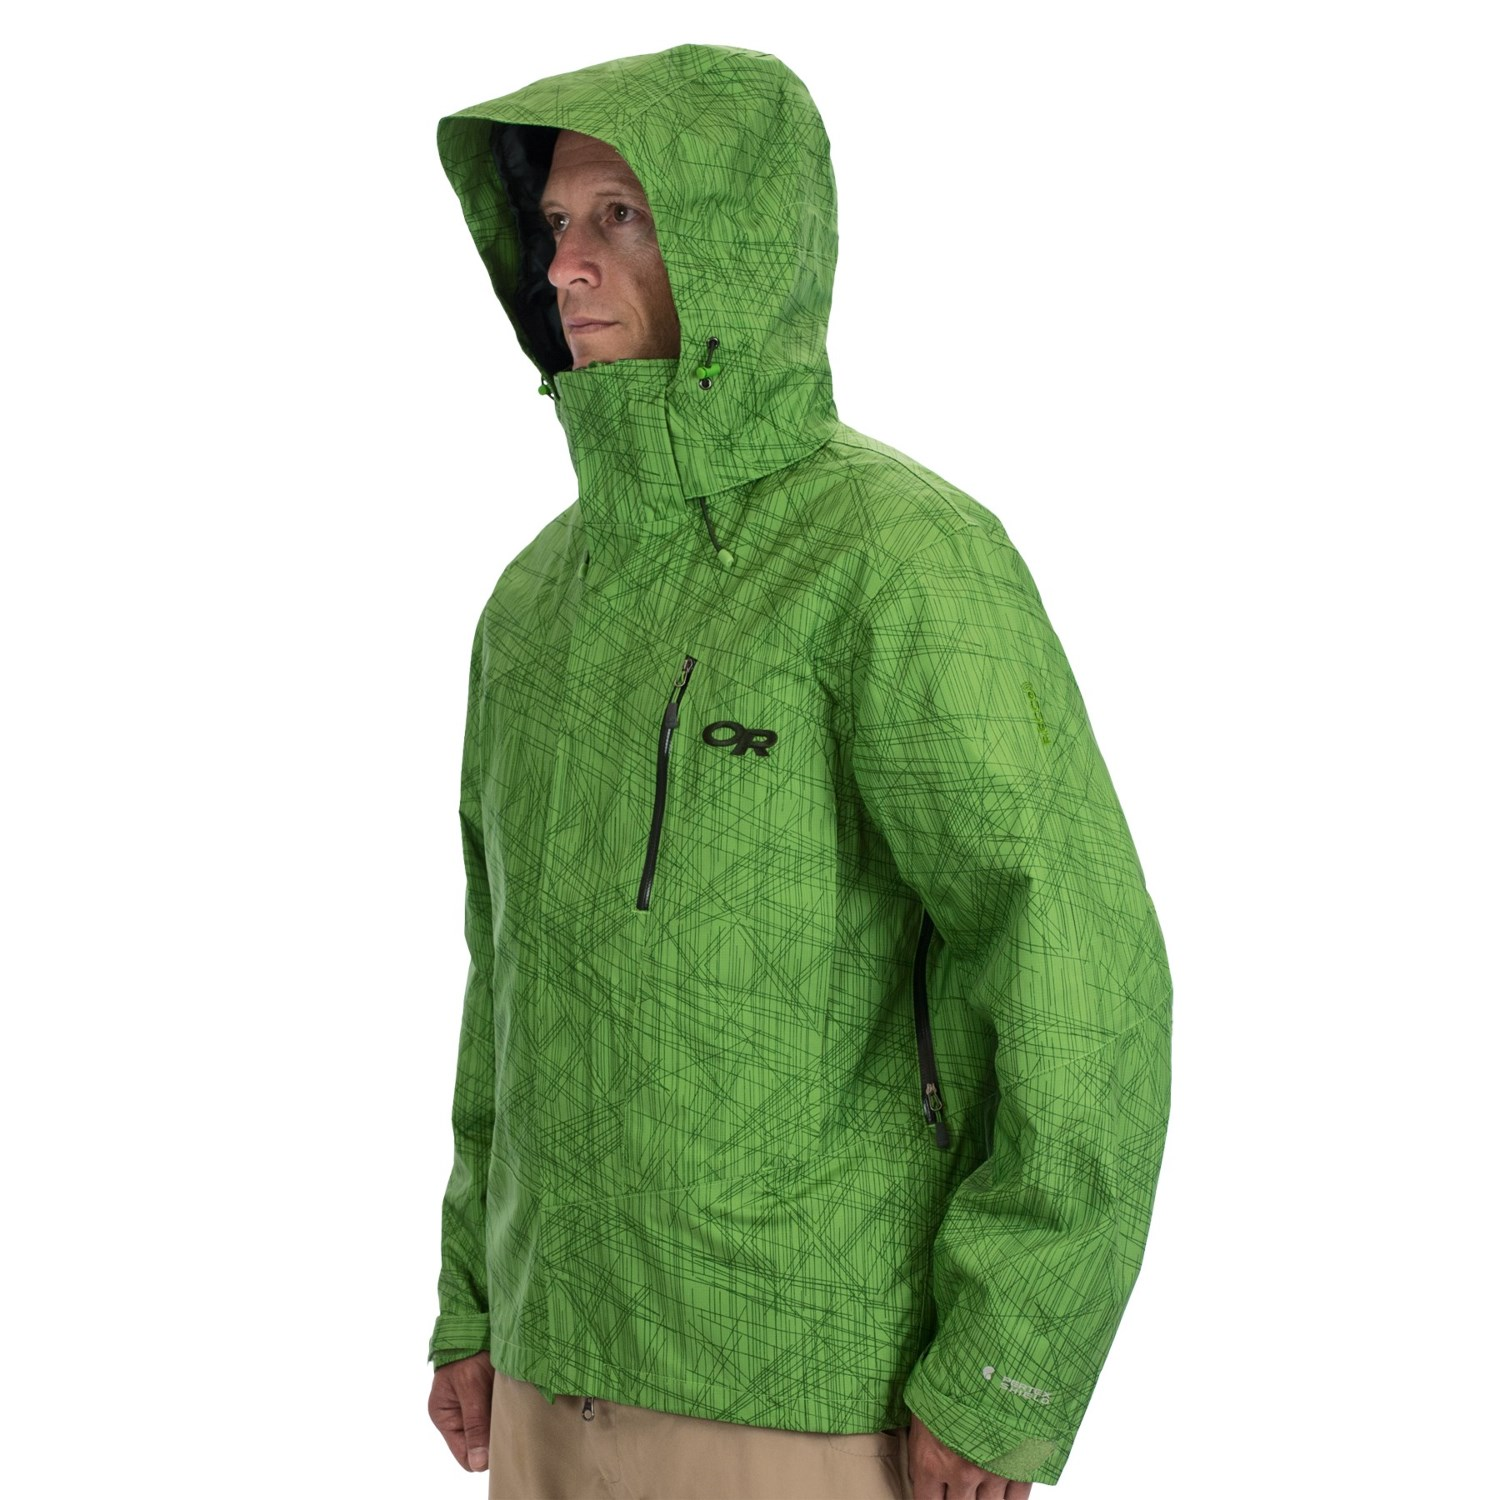 Outdoor Research Igneo Jacket For Men 7003y Save 39